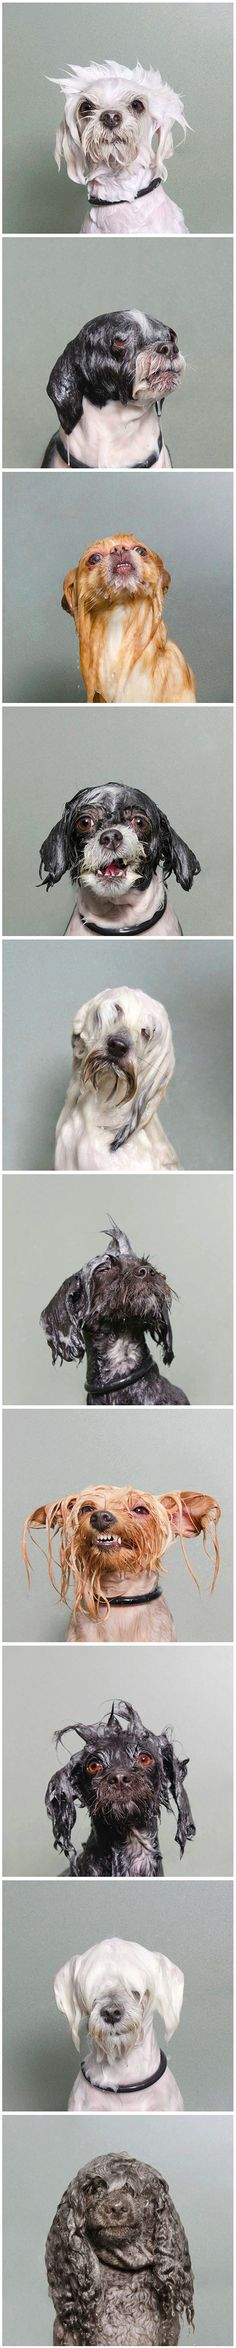 """'Wet Dog' by Sophie Gamanda: The """"Wet Dog"""" series has won the Portraiture category of the Sony World Photography Awards 2014. via techneblog http://sophiegamand.com/ #Photography #Dog #Wet_Dog"""